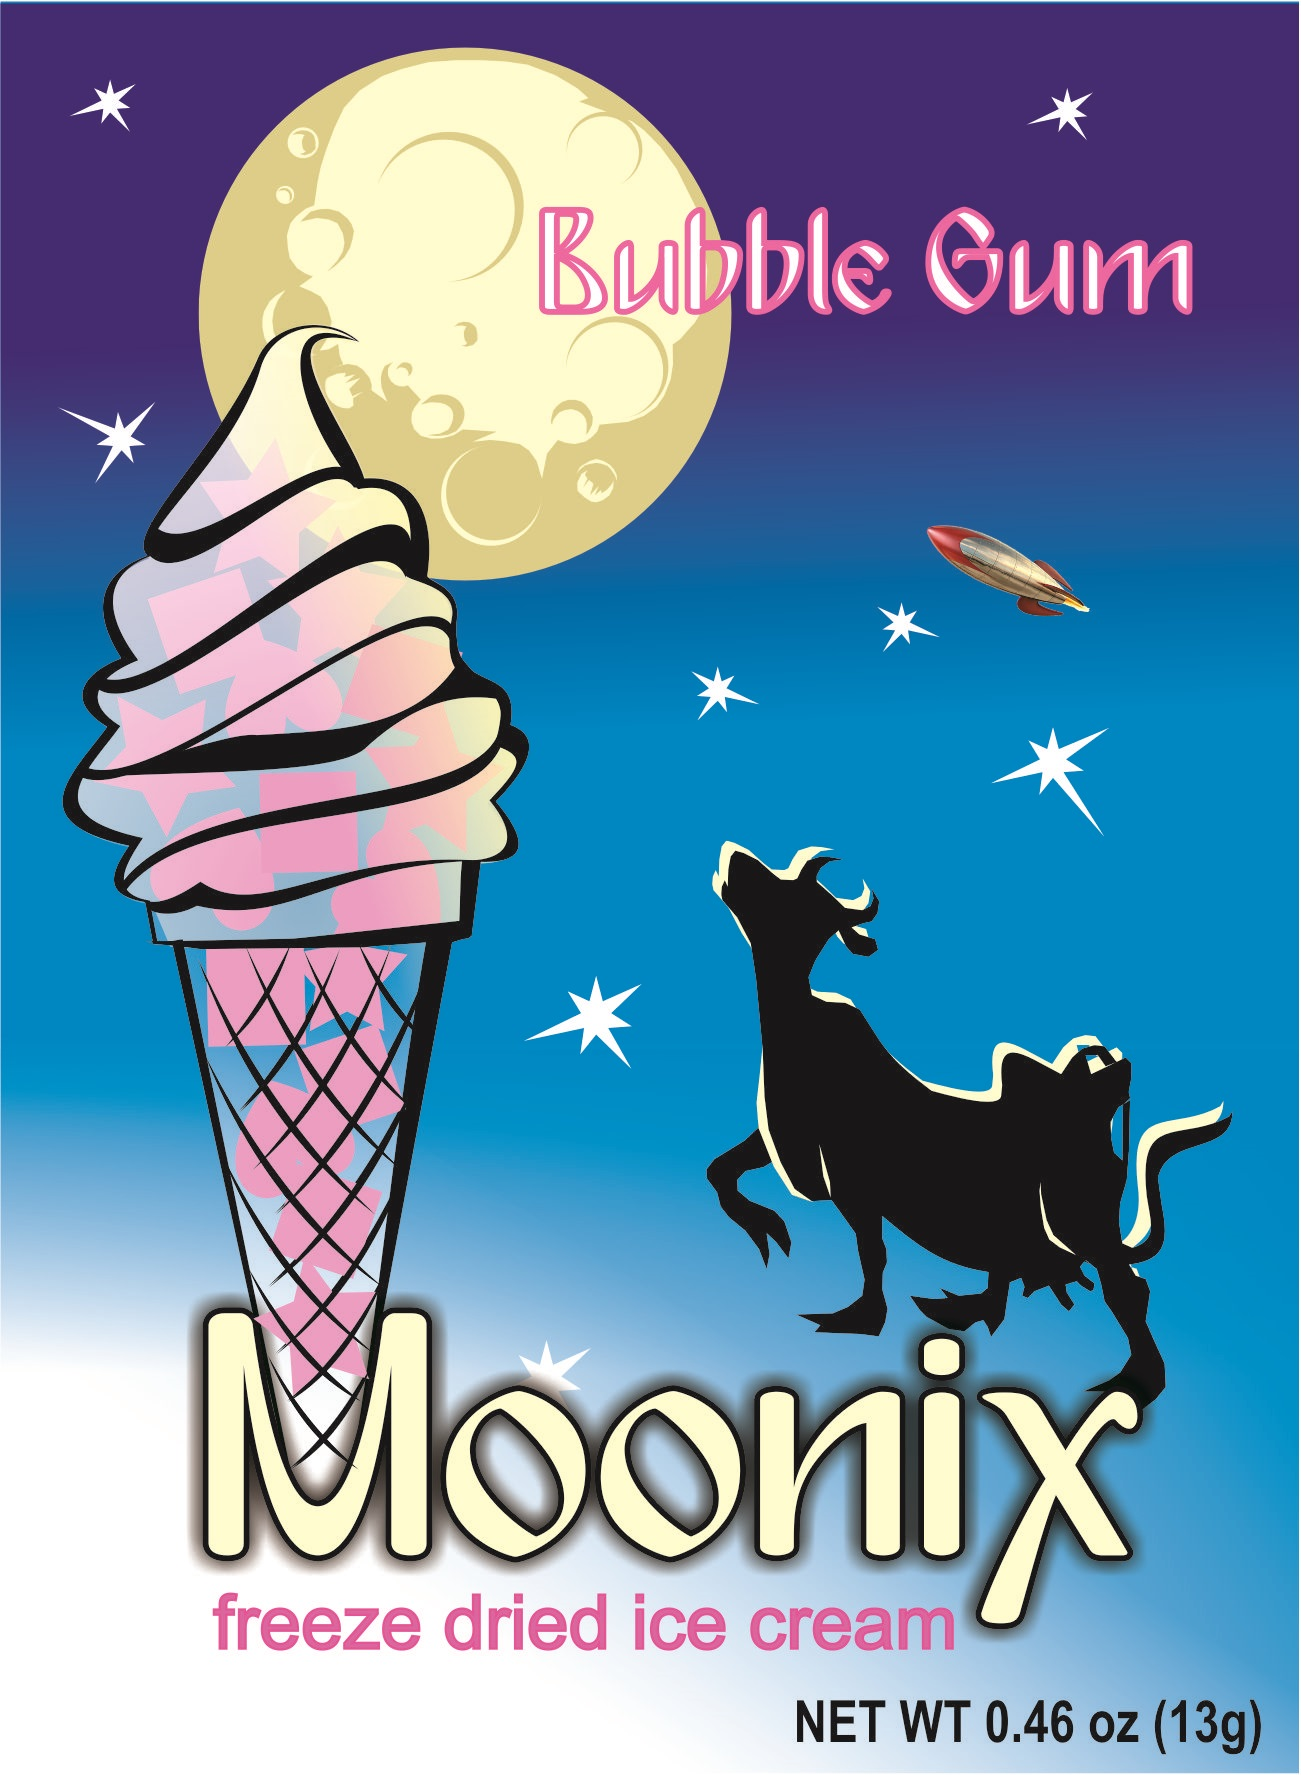 Moonix Freeze Dried Ice Cream Bubble Gum